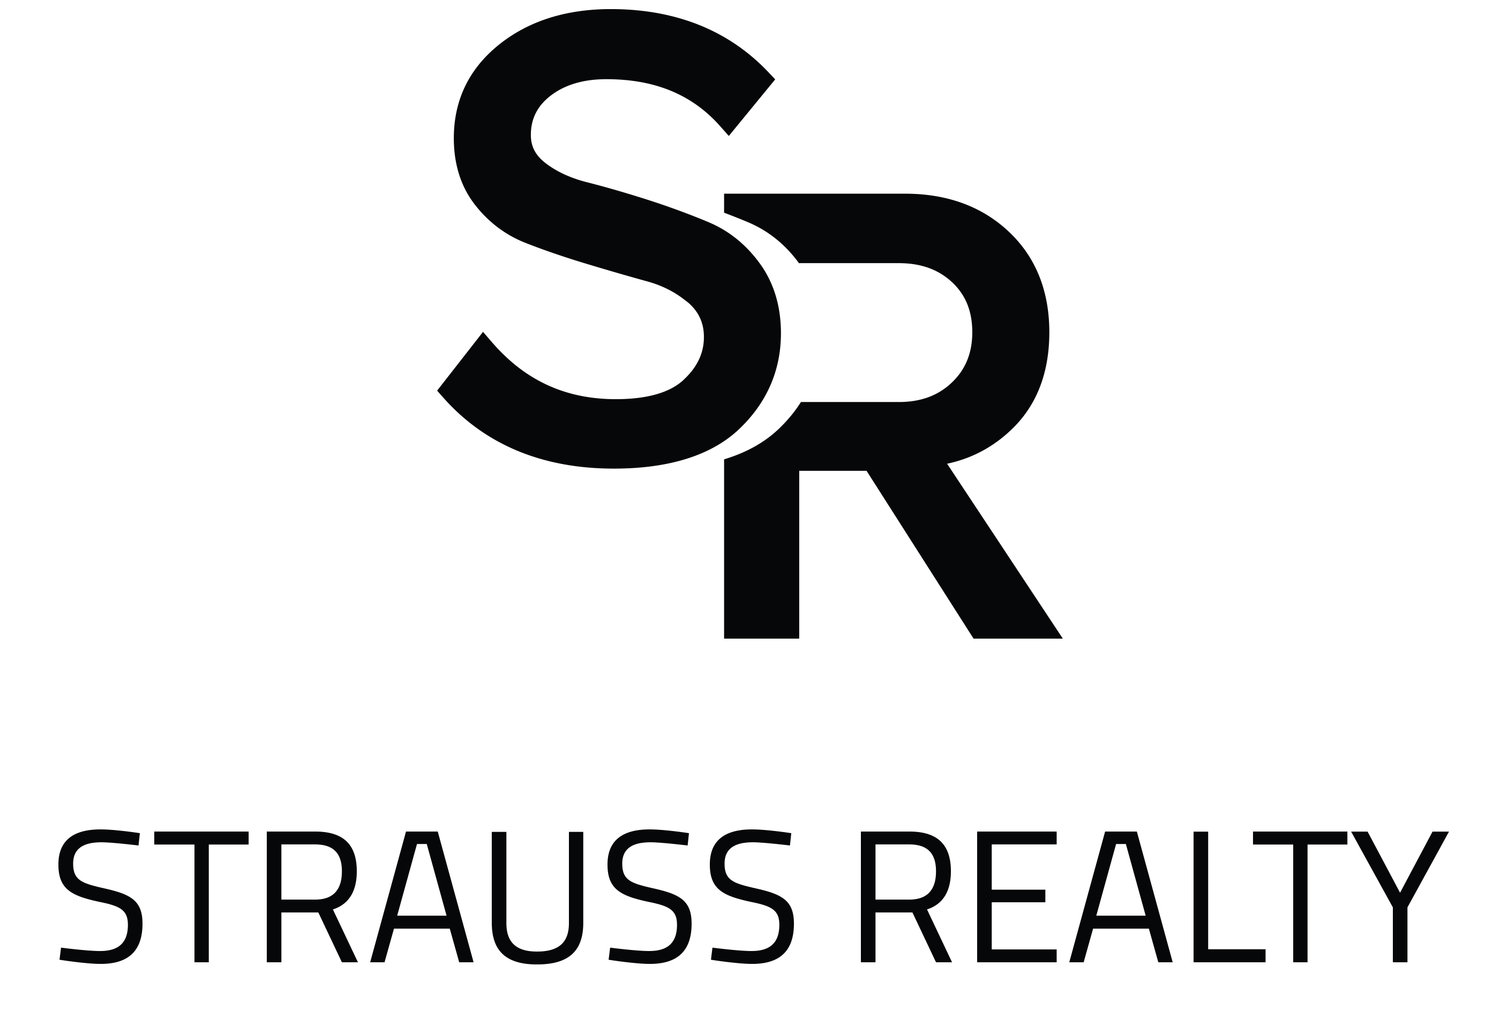 STRAUSS REALTY